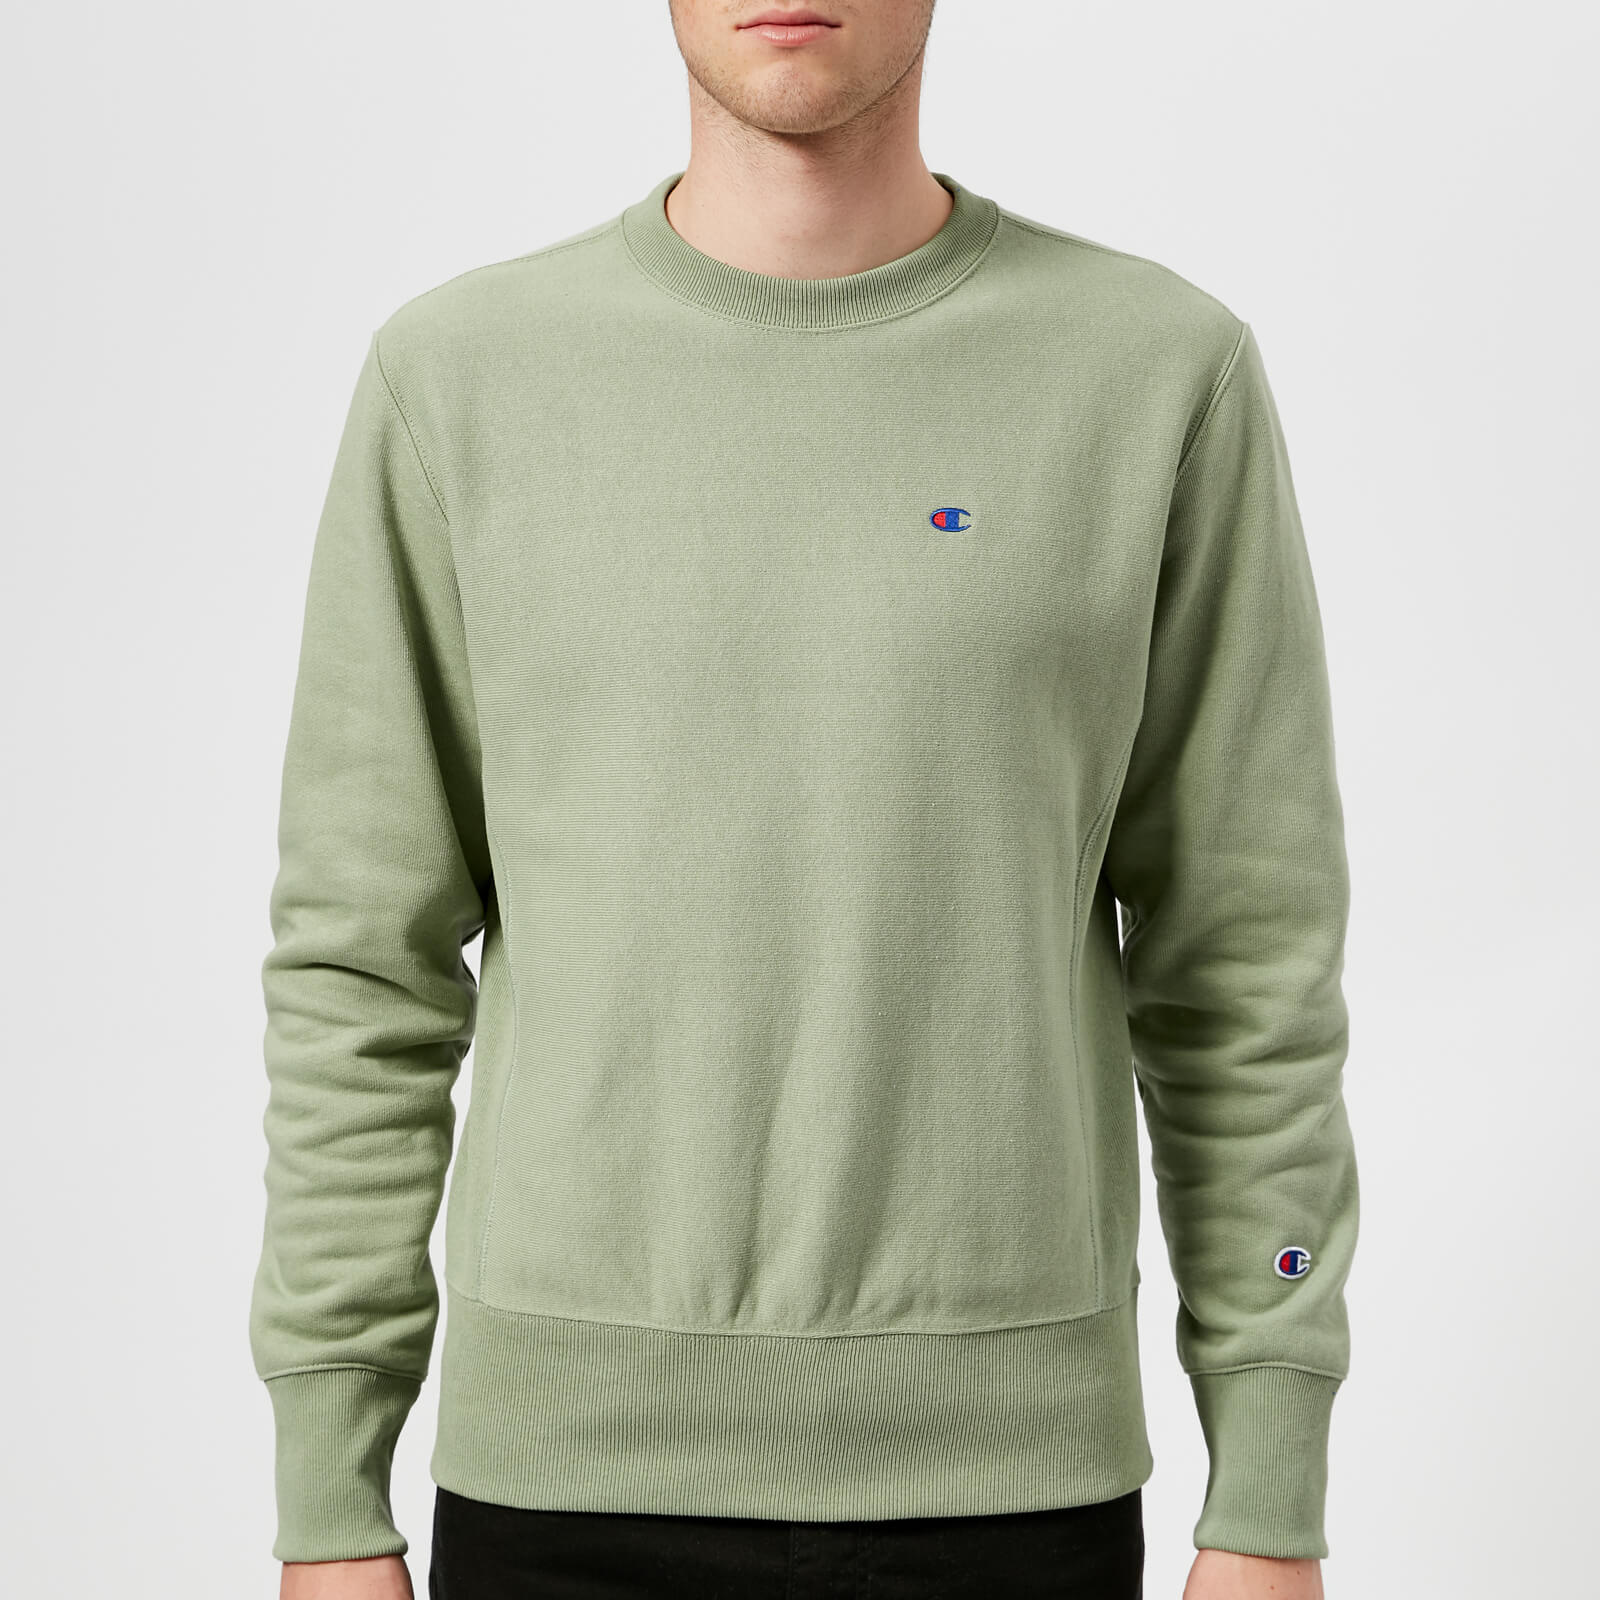 eef99000b Champion Men's Crew Neck Sweatshirt - Khaki - Free UK Delivery over £50